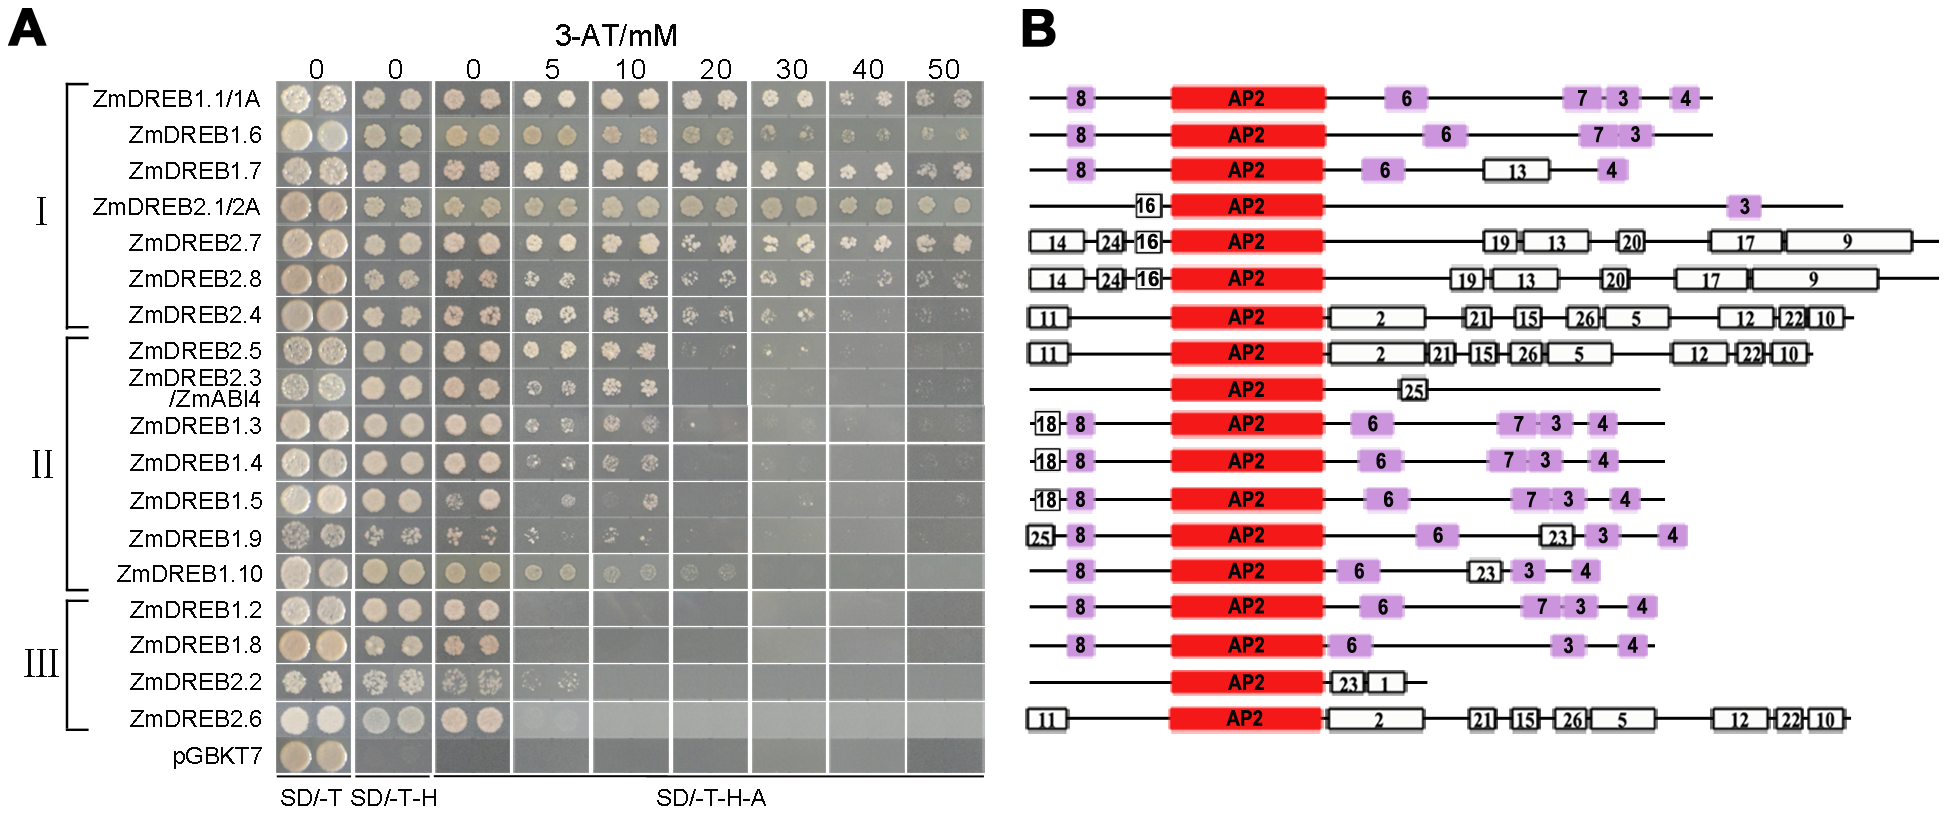 Transactivation activity assay and motif analysis of 18 ZmDREB proteins.